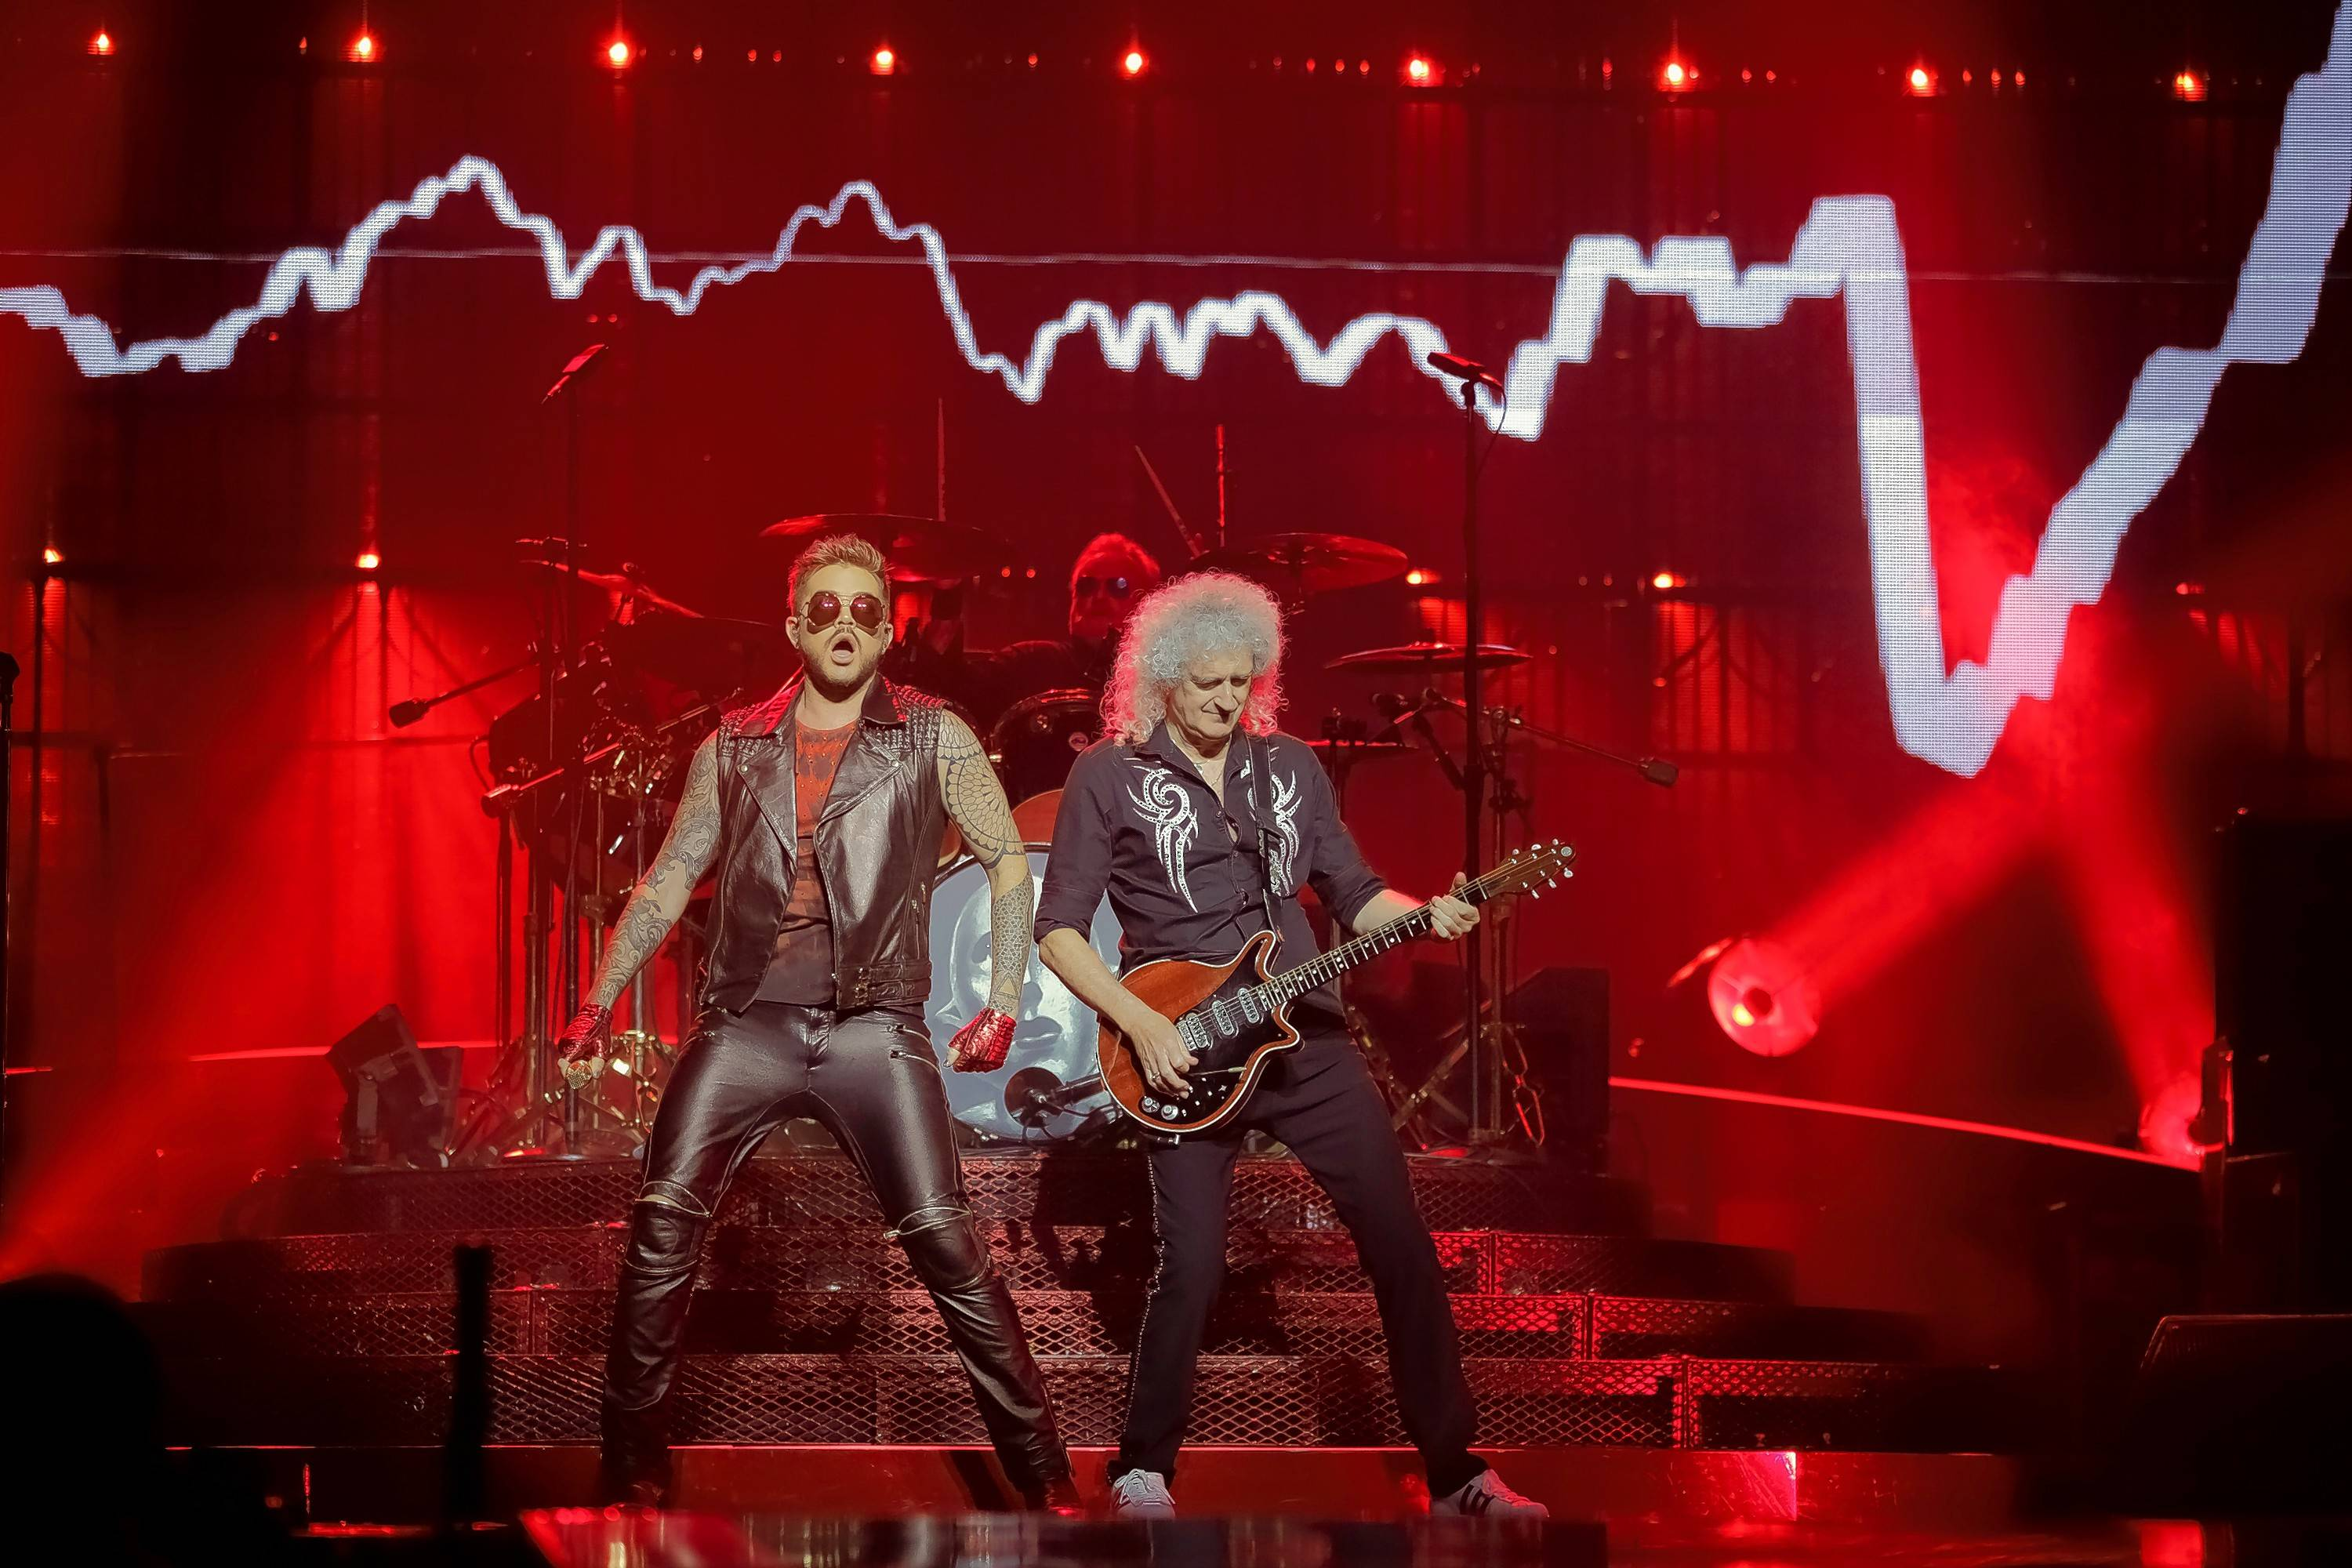 Queen and Adam Lambert tour to Chicago's United Center at 8 p.m. Friday, Aug. 9.